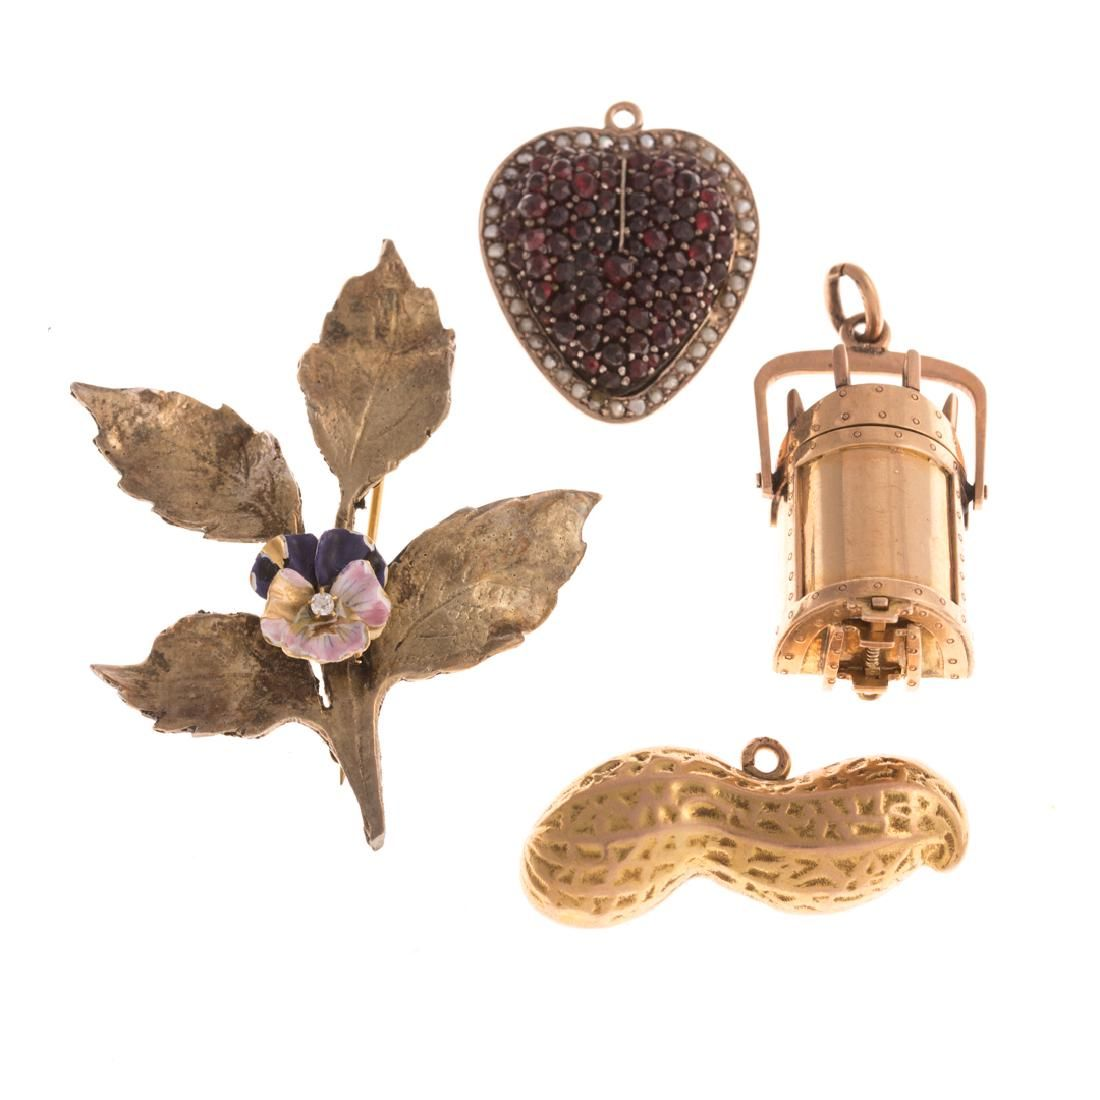 A Collection of Victorian Jewelry Featuring Charms